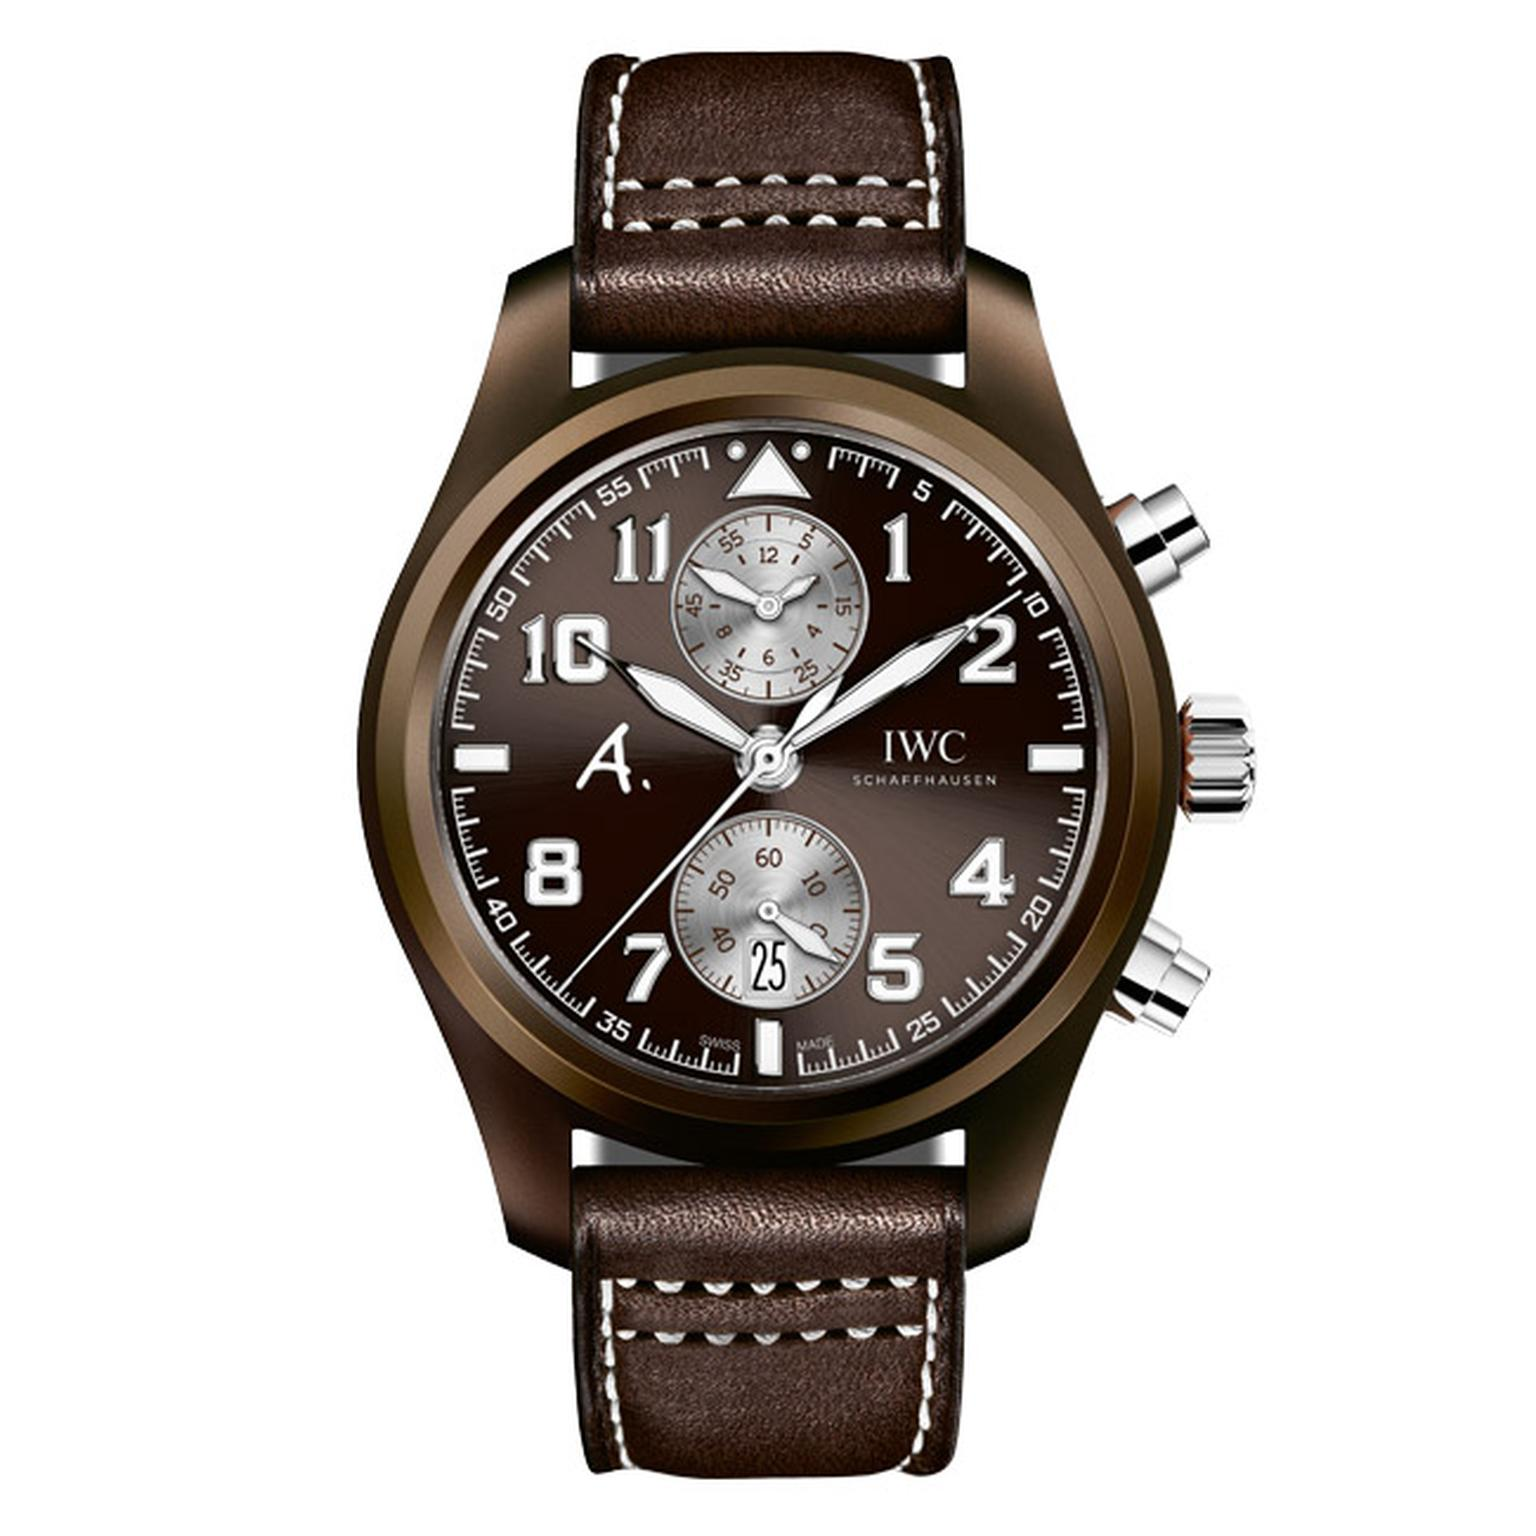 IWC-Last-Flight-main